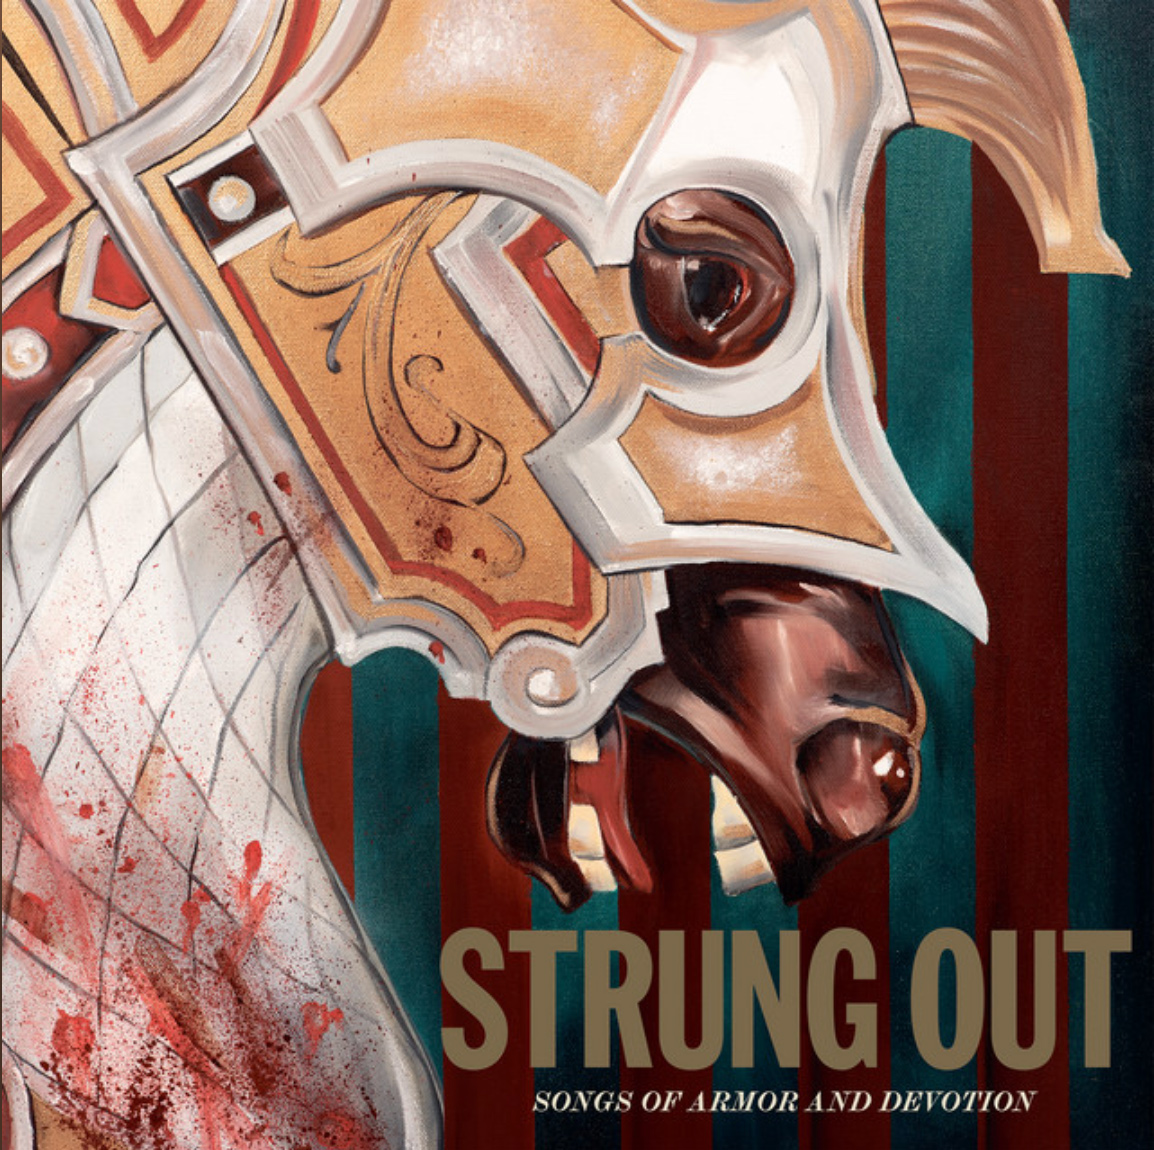 song politics of sleep by Strung Out